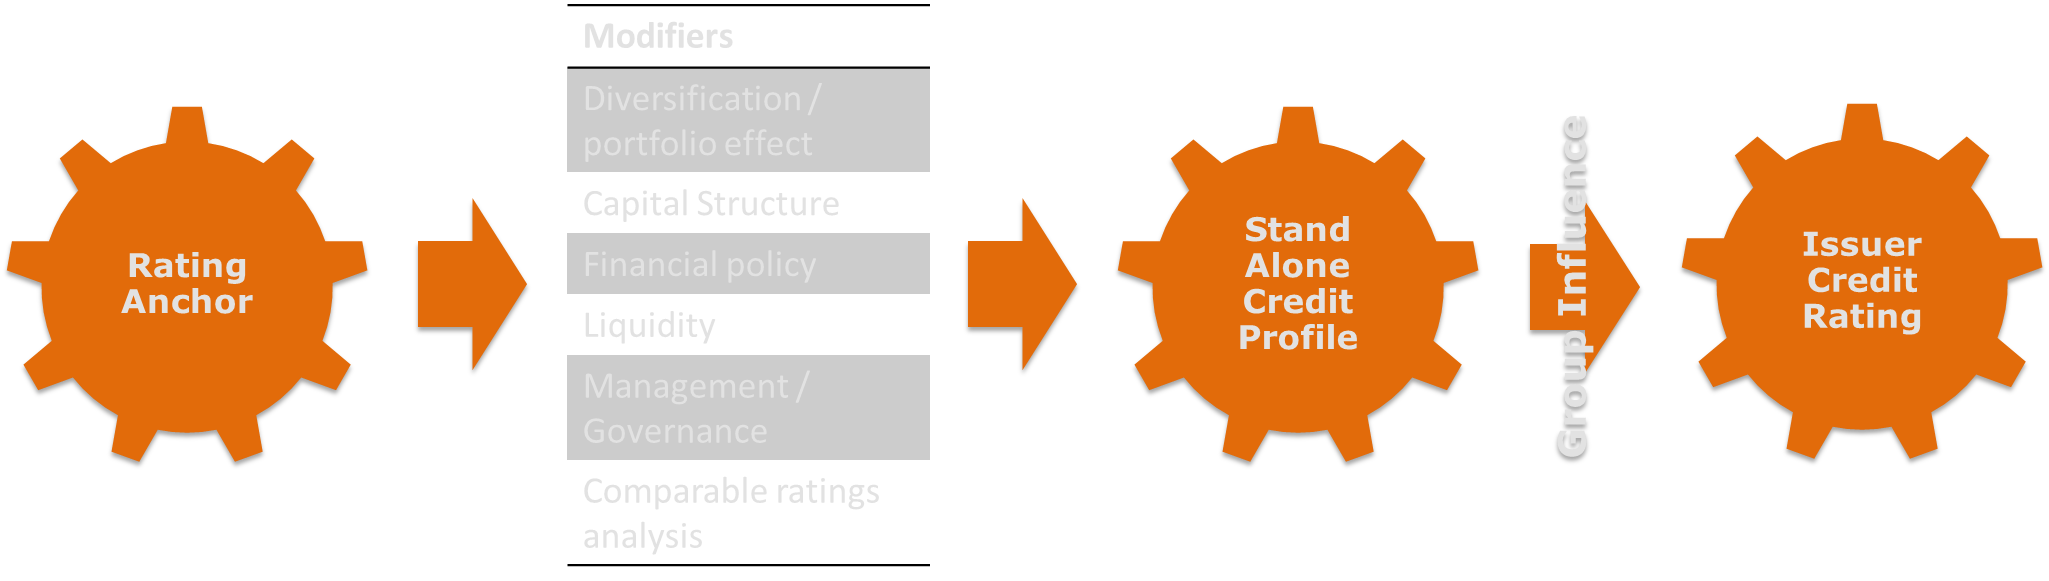 Anchor to Issuer Credit Rating